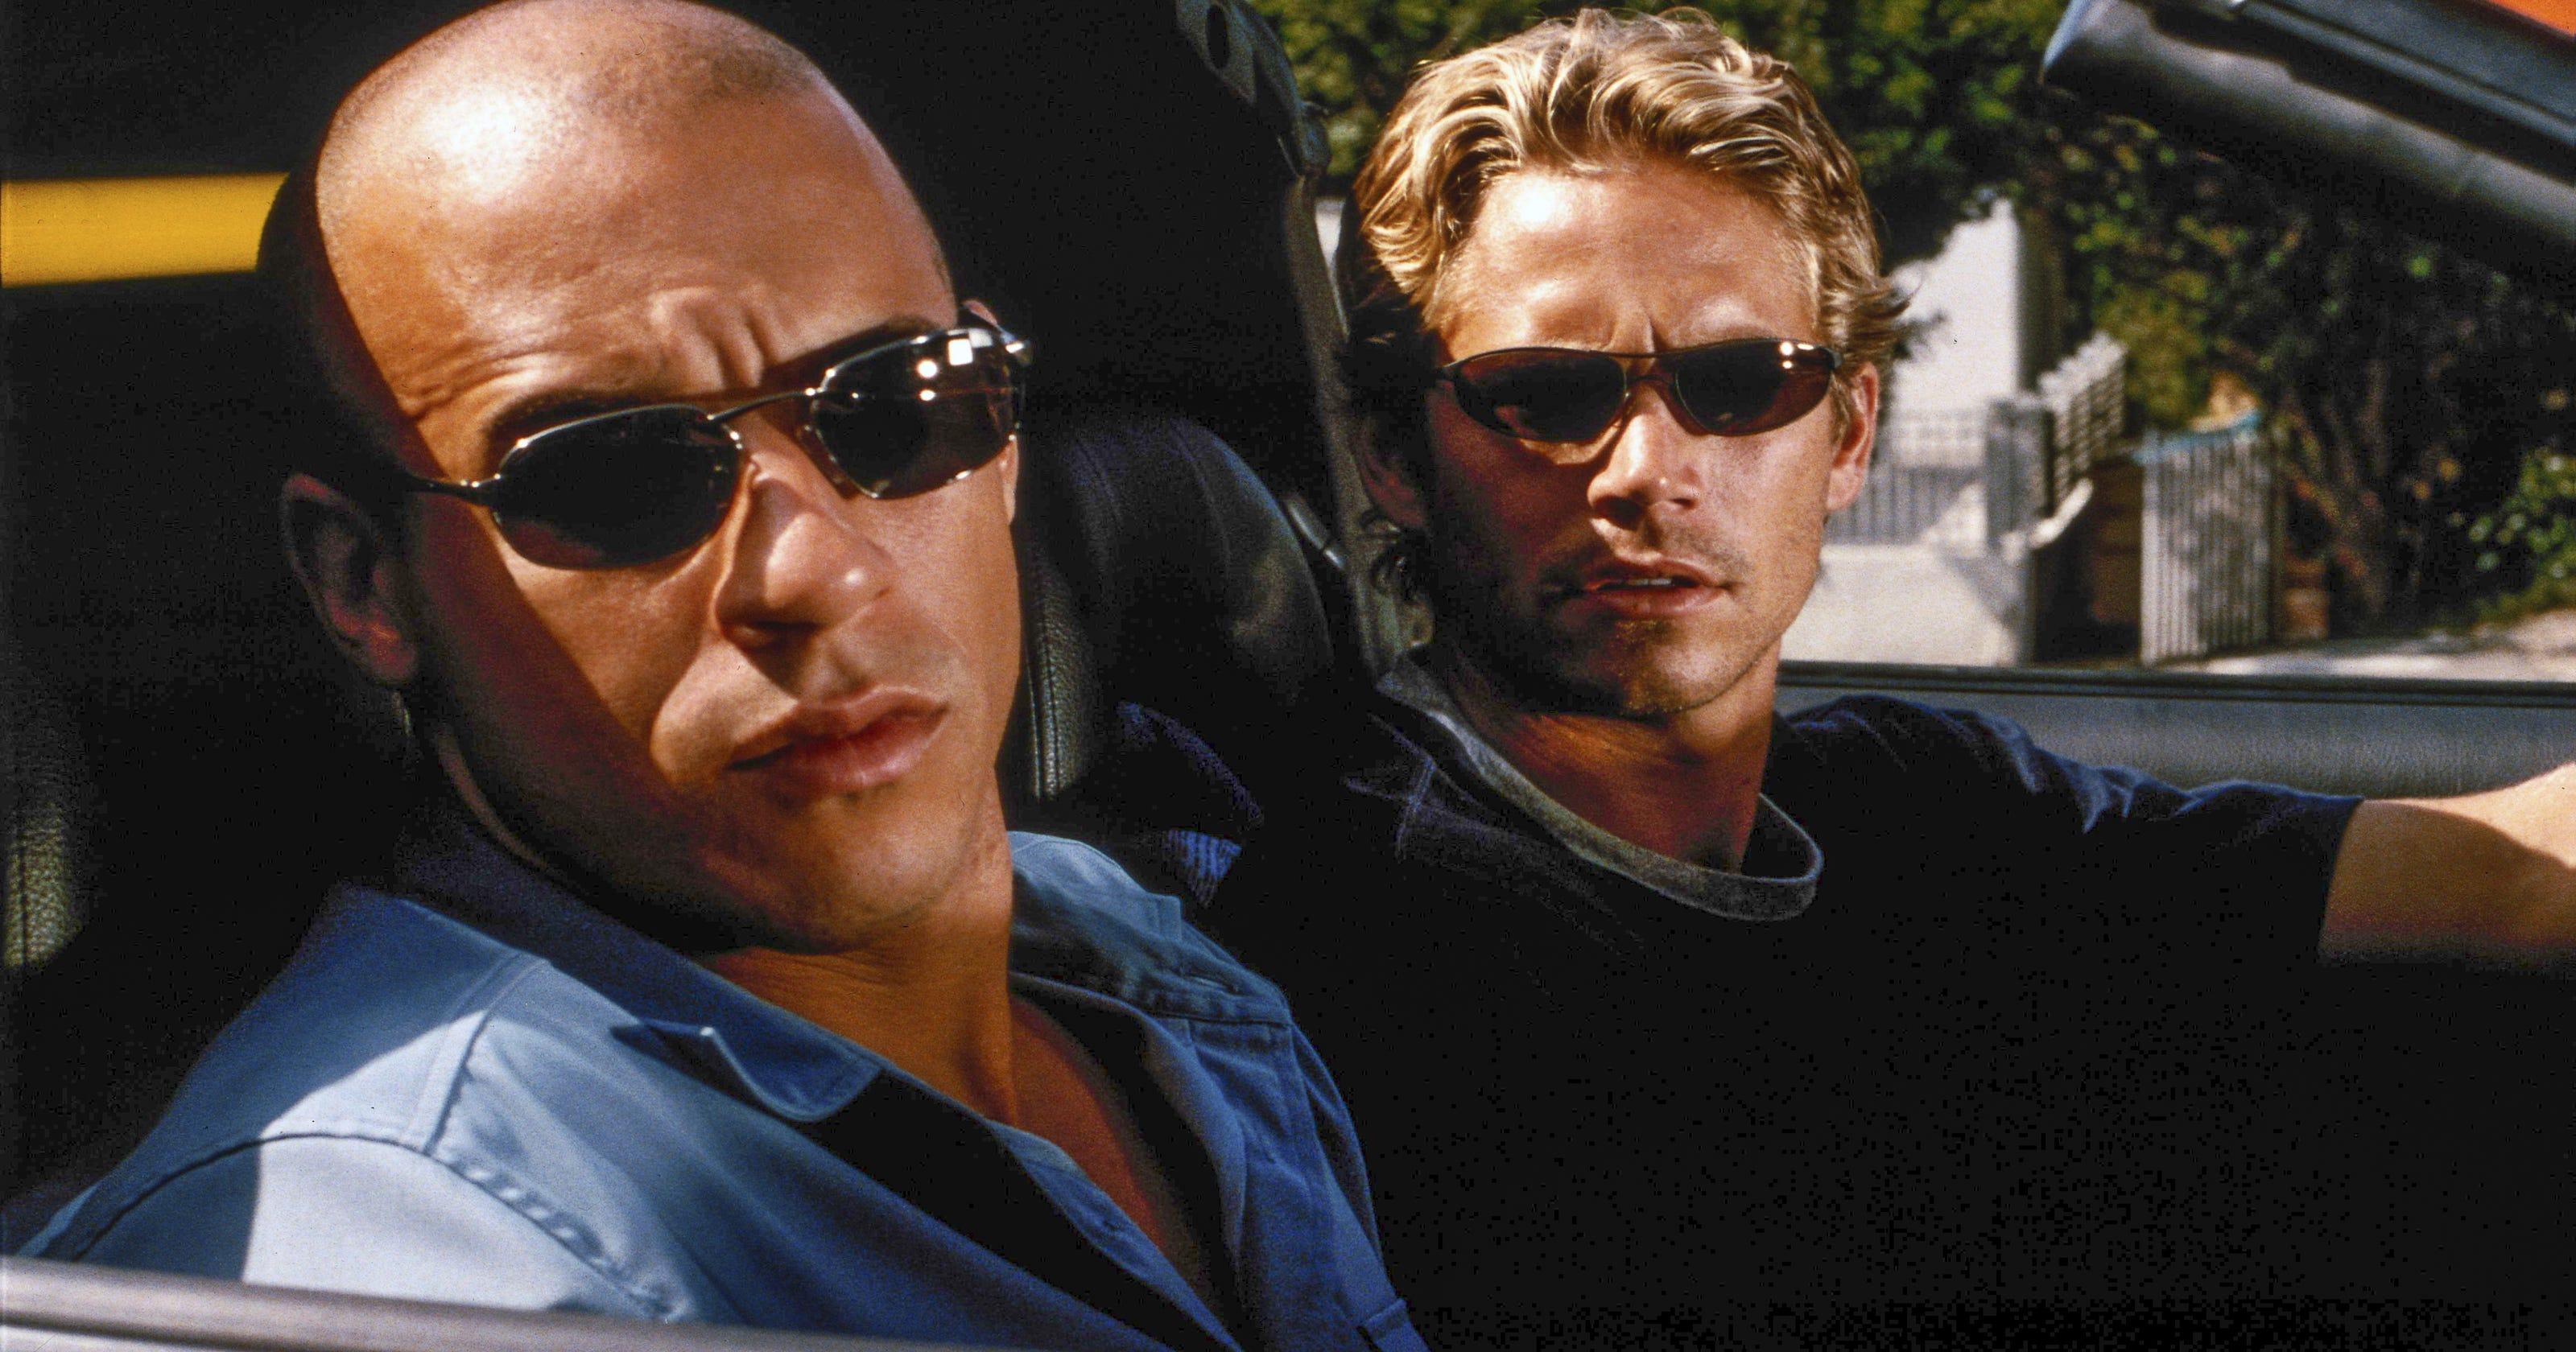 827 Minutes Of Fast And Furious